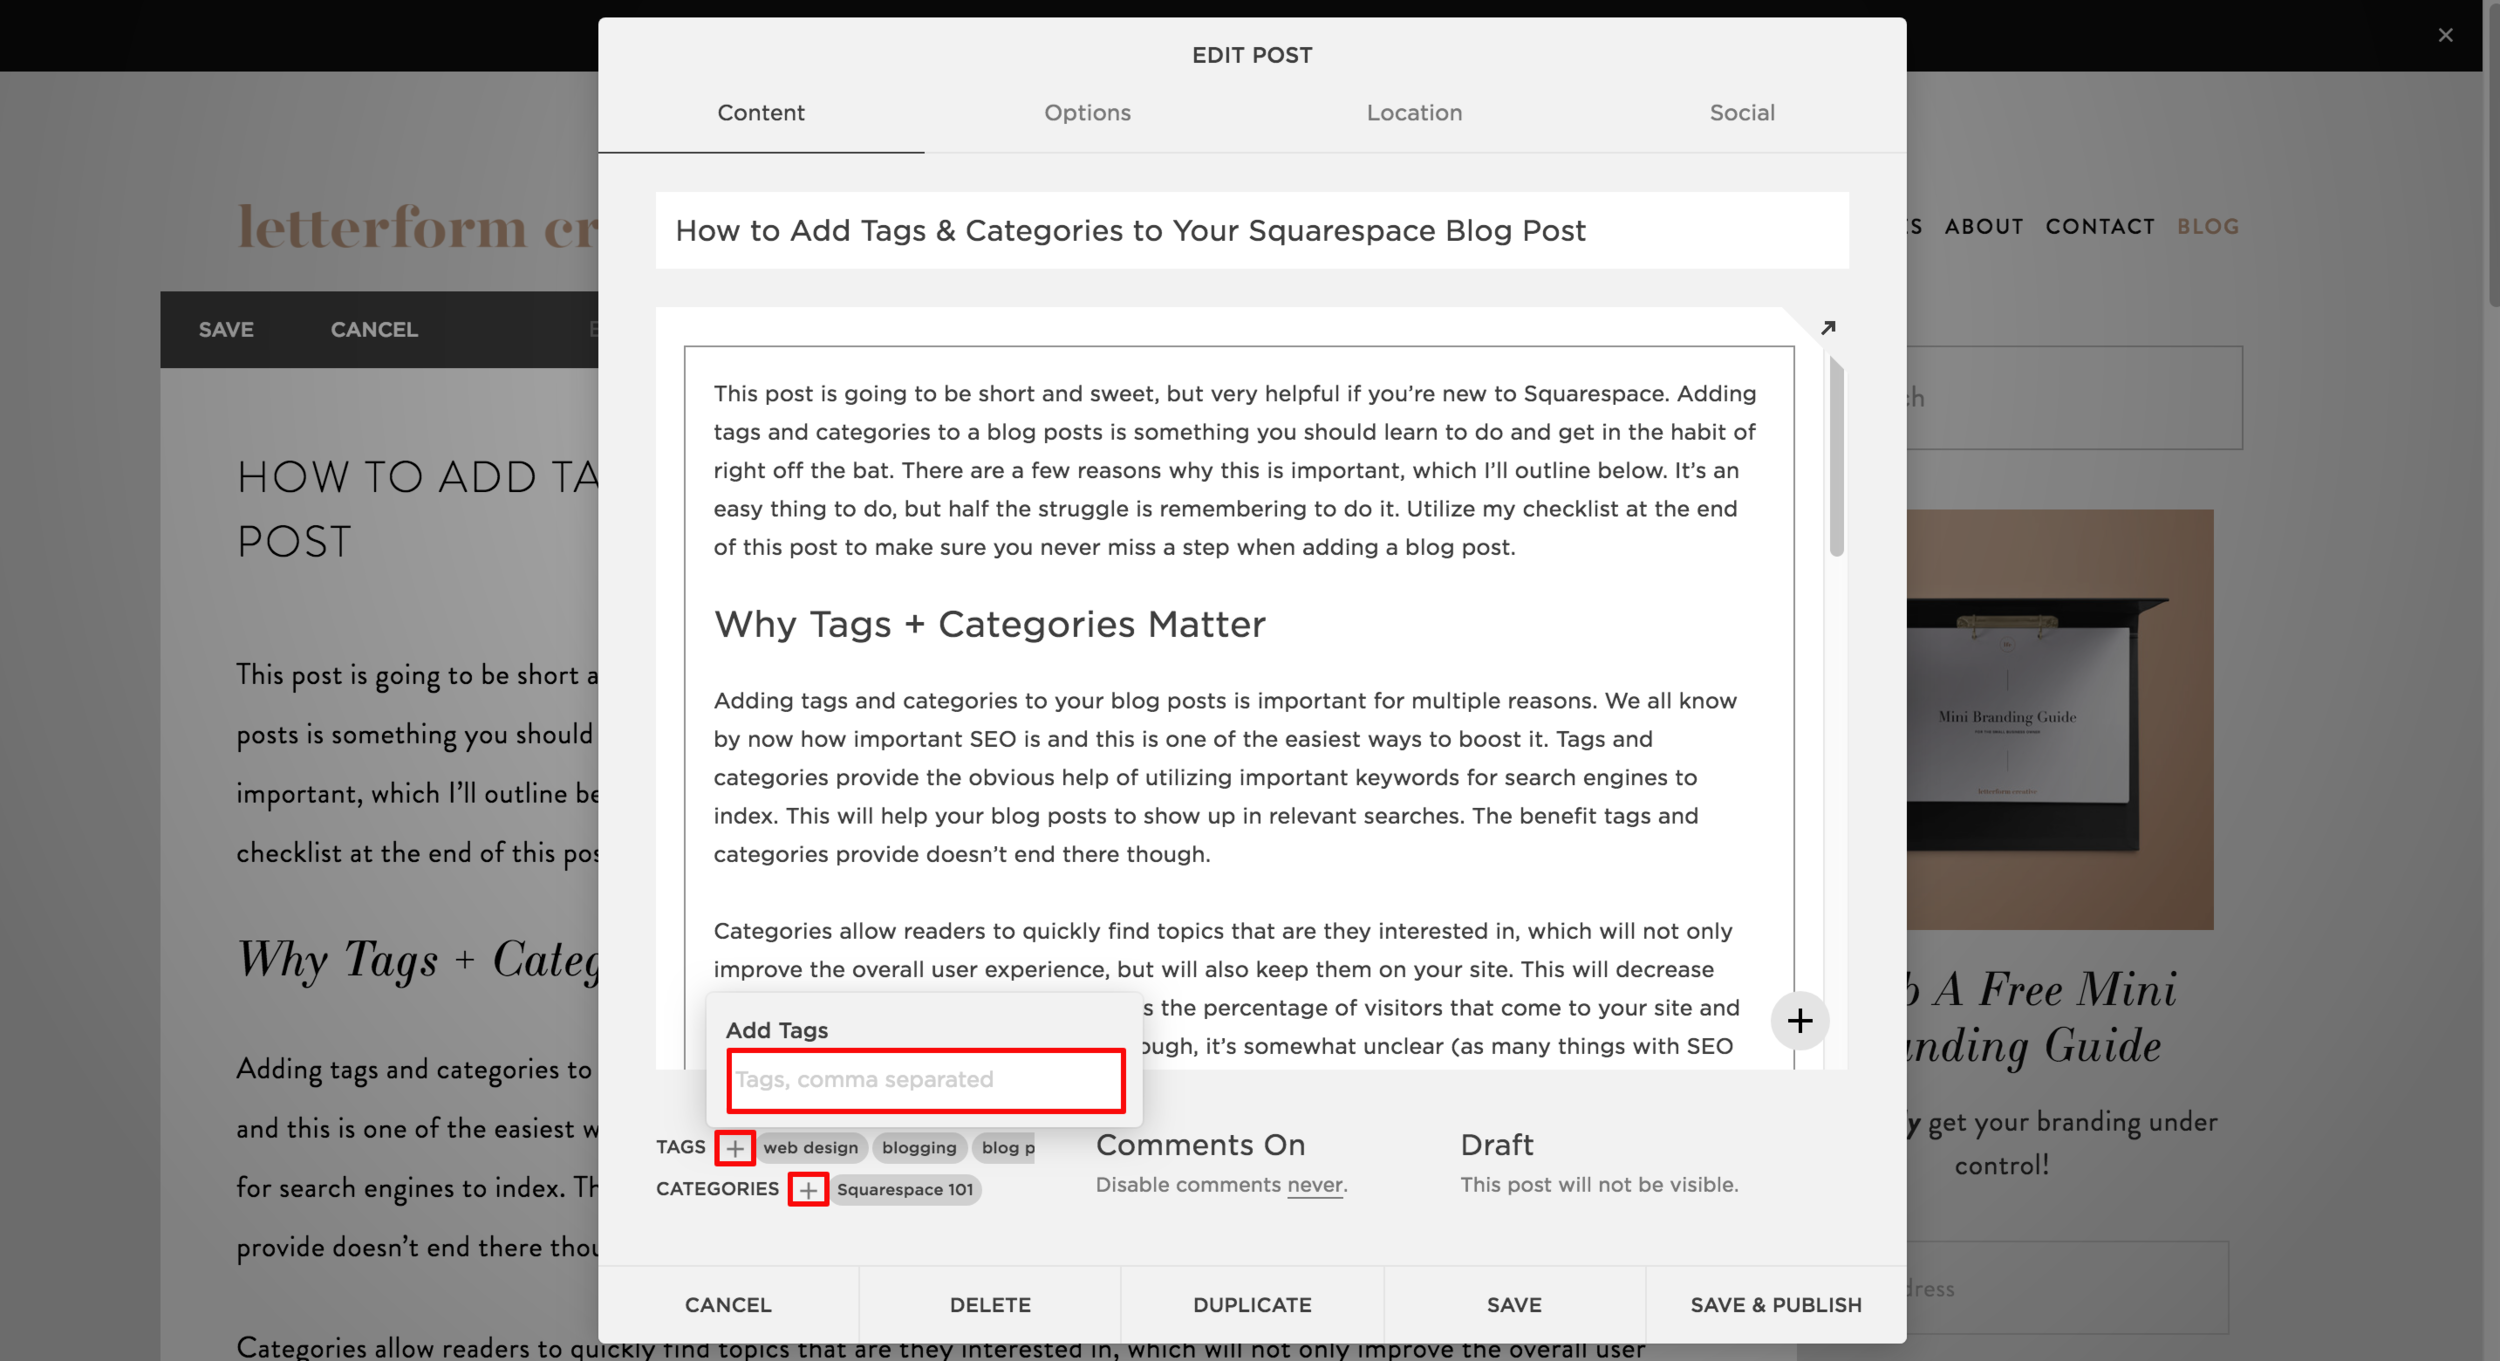 Are you using Squarespace for your small business's website? If so, learn how to add tags and categories to your blog posts. Not only will this help with SEO, it will make your site more user-friendly. This post also includes a helpful blogging Checklist! Click through to read it.